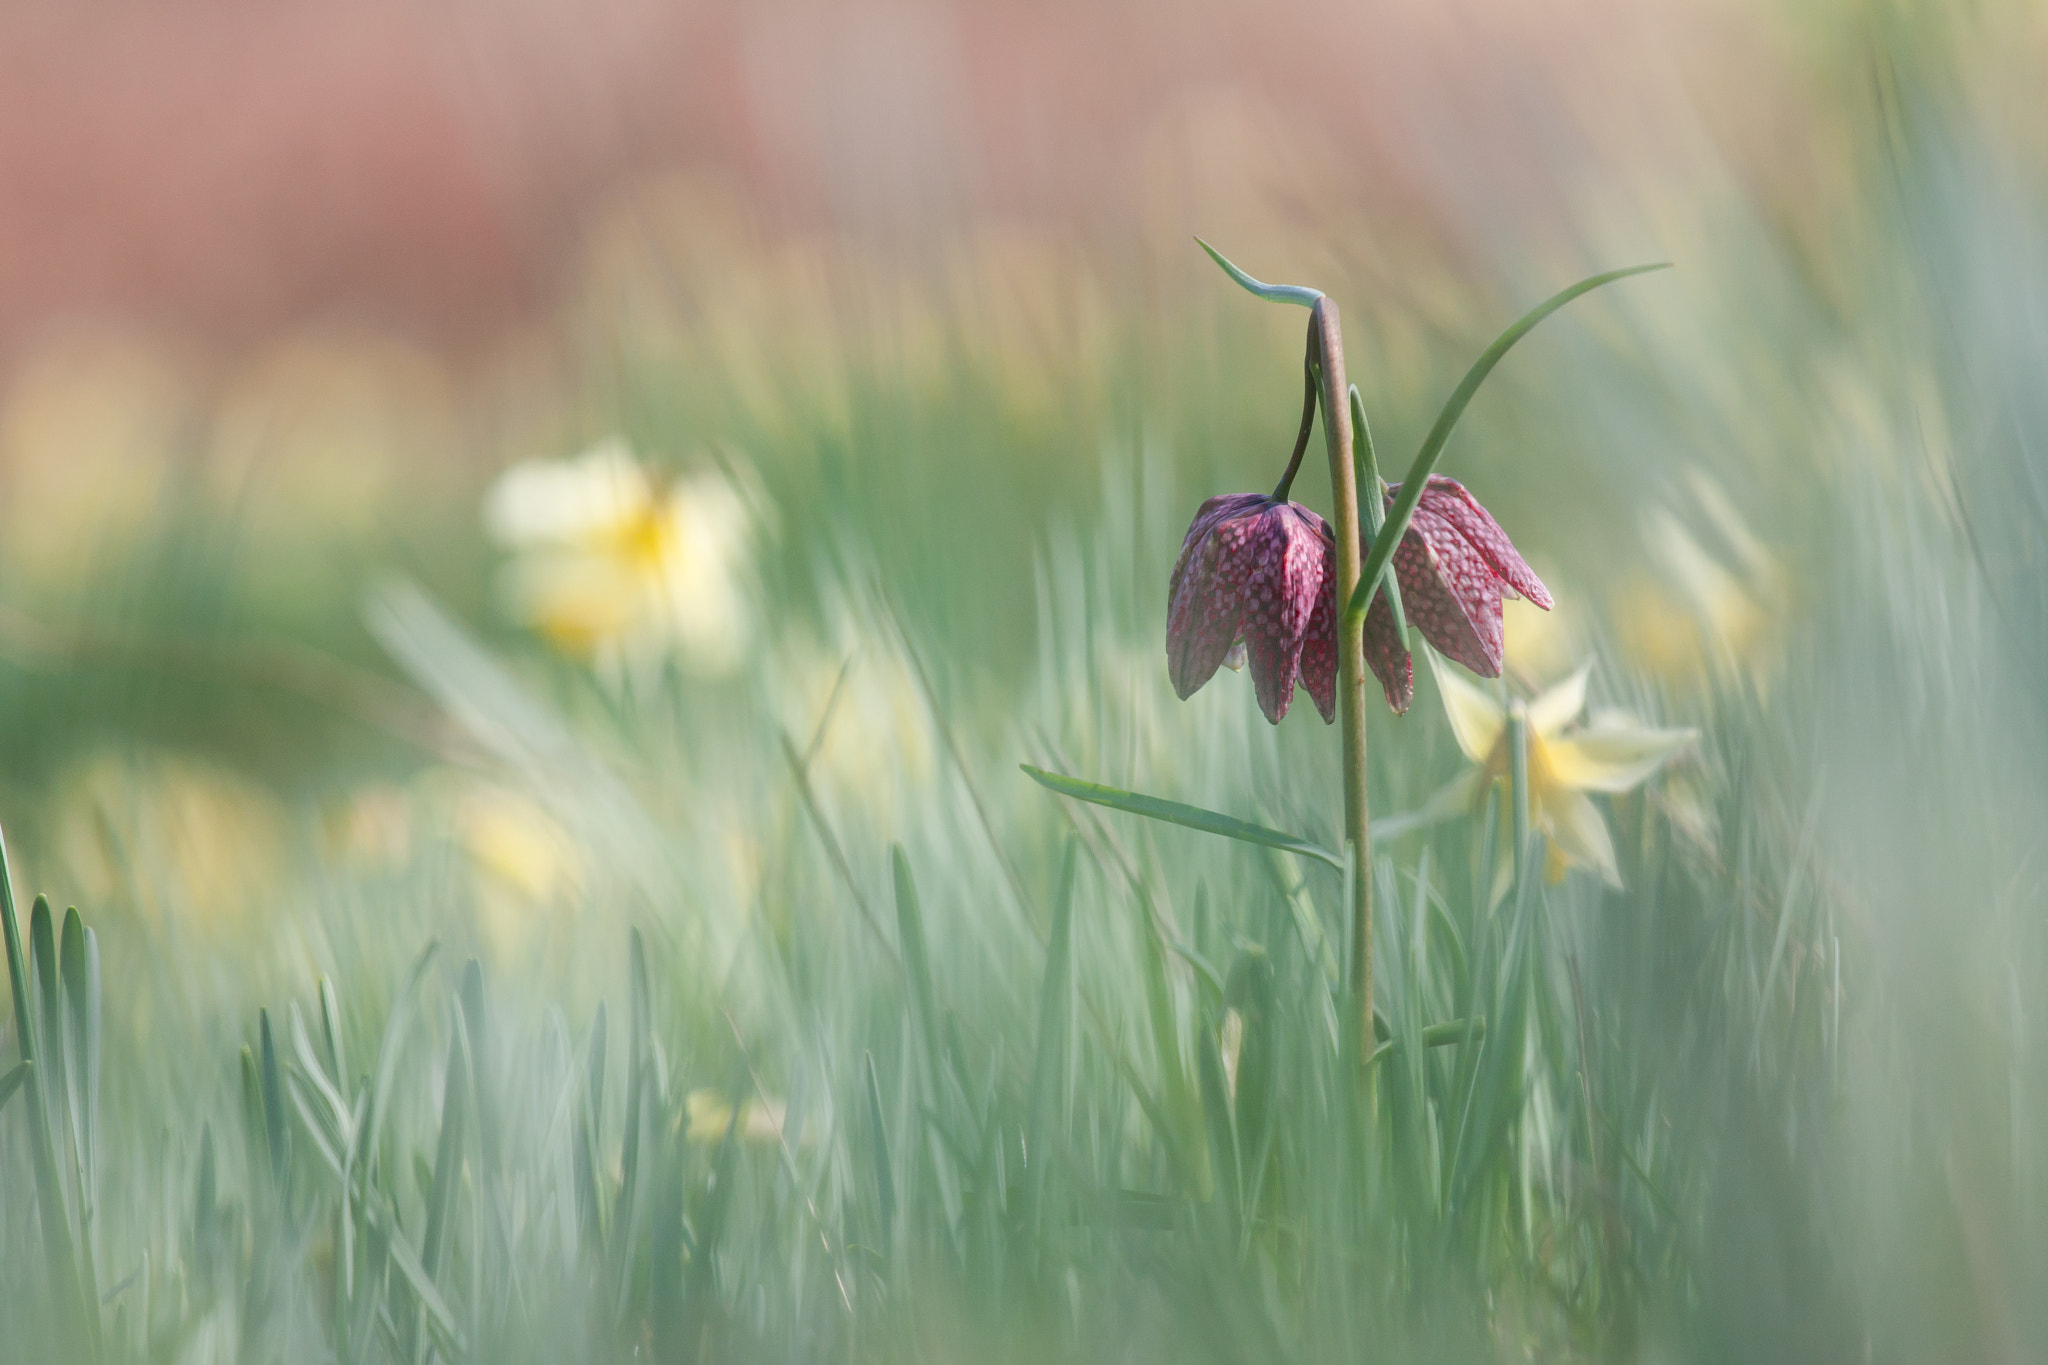 Photograph Spring 2 by Teuni Stevense on 500px